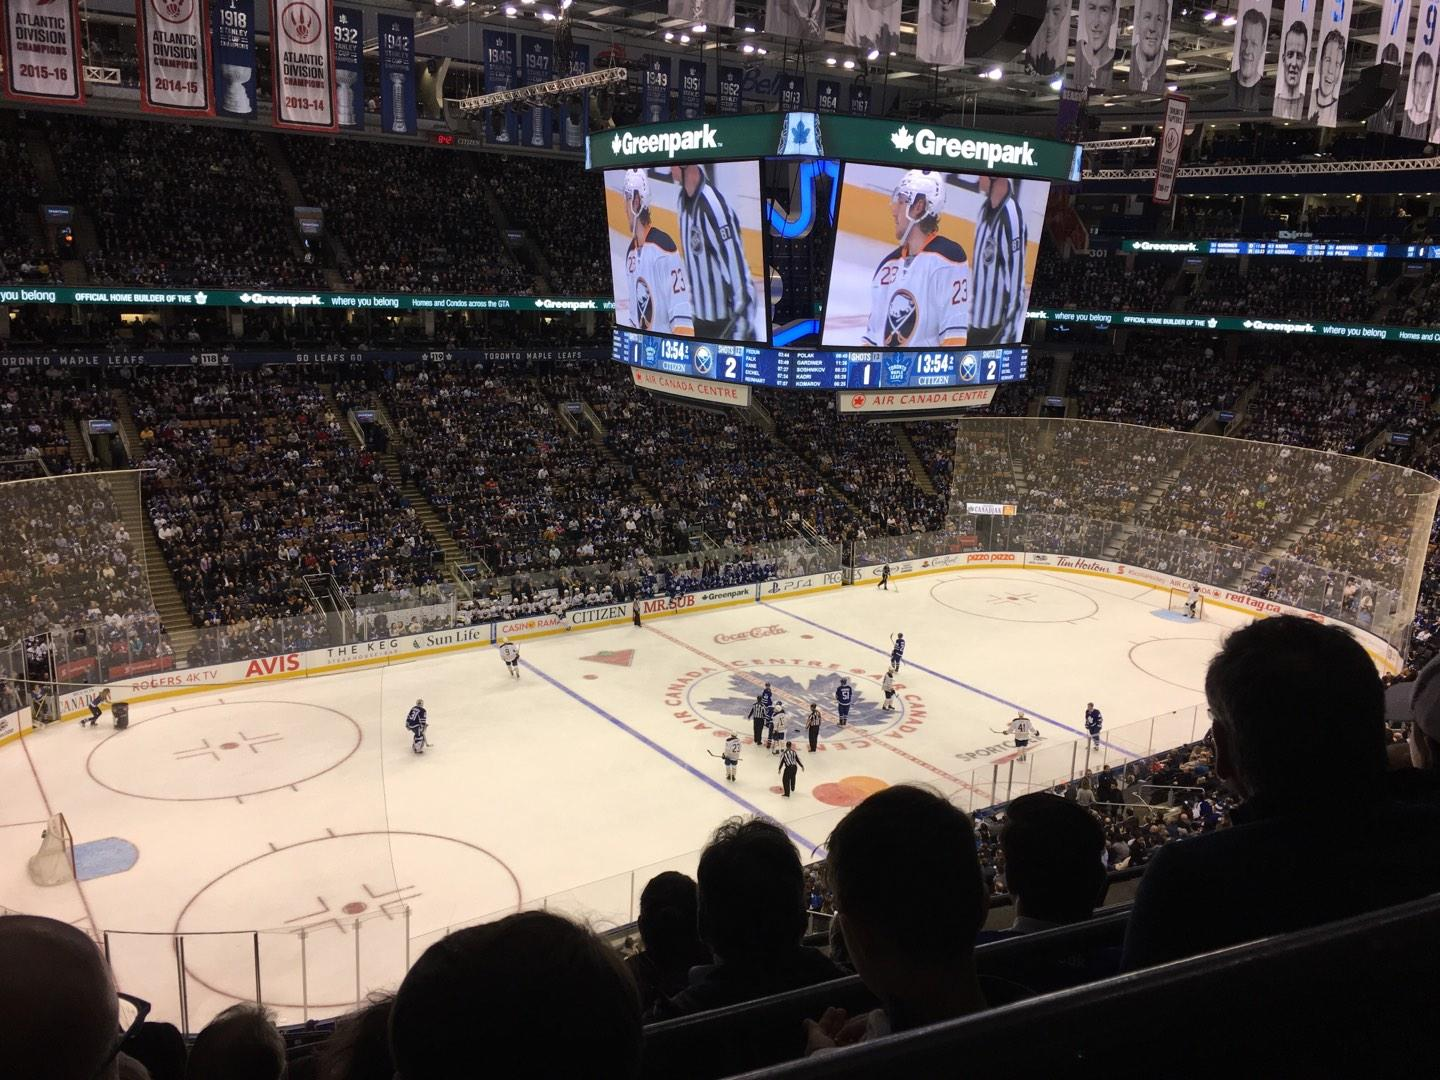 Scotiabank Arena Section 311 Row 5 Seat 19